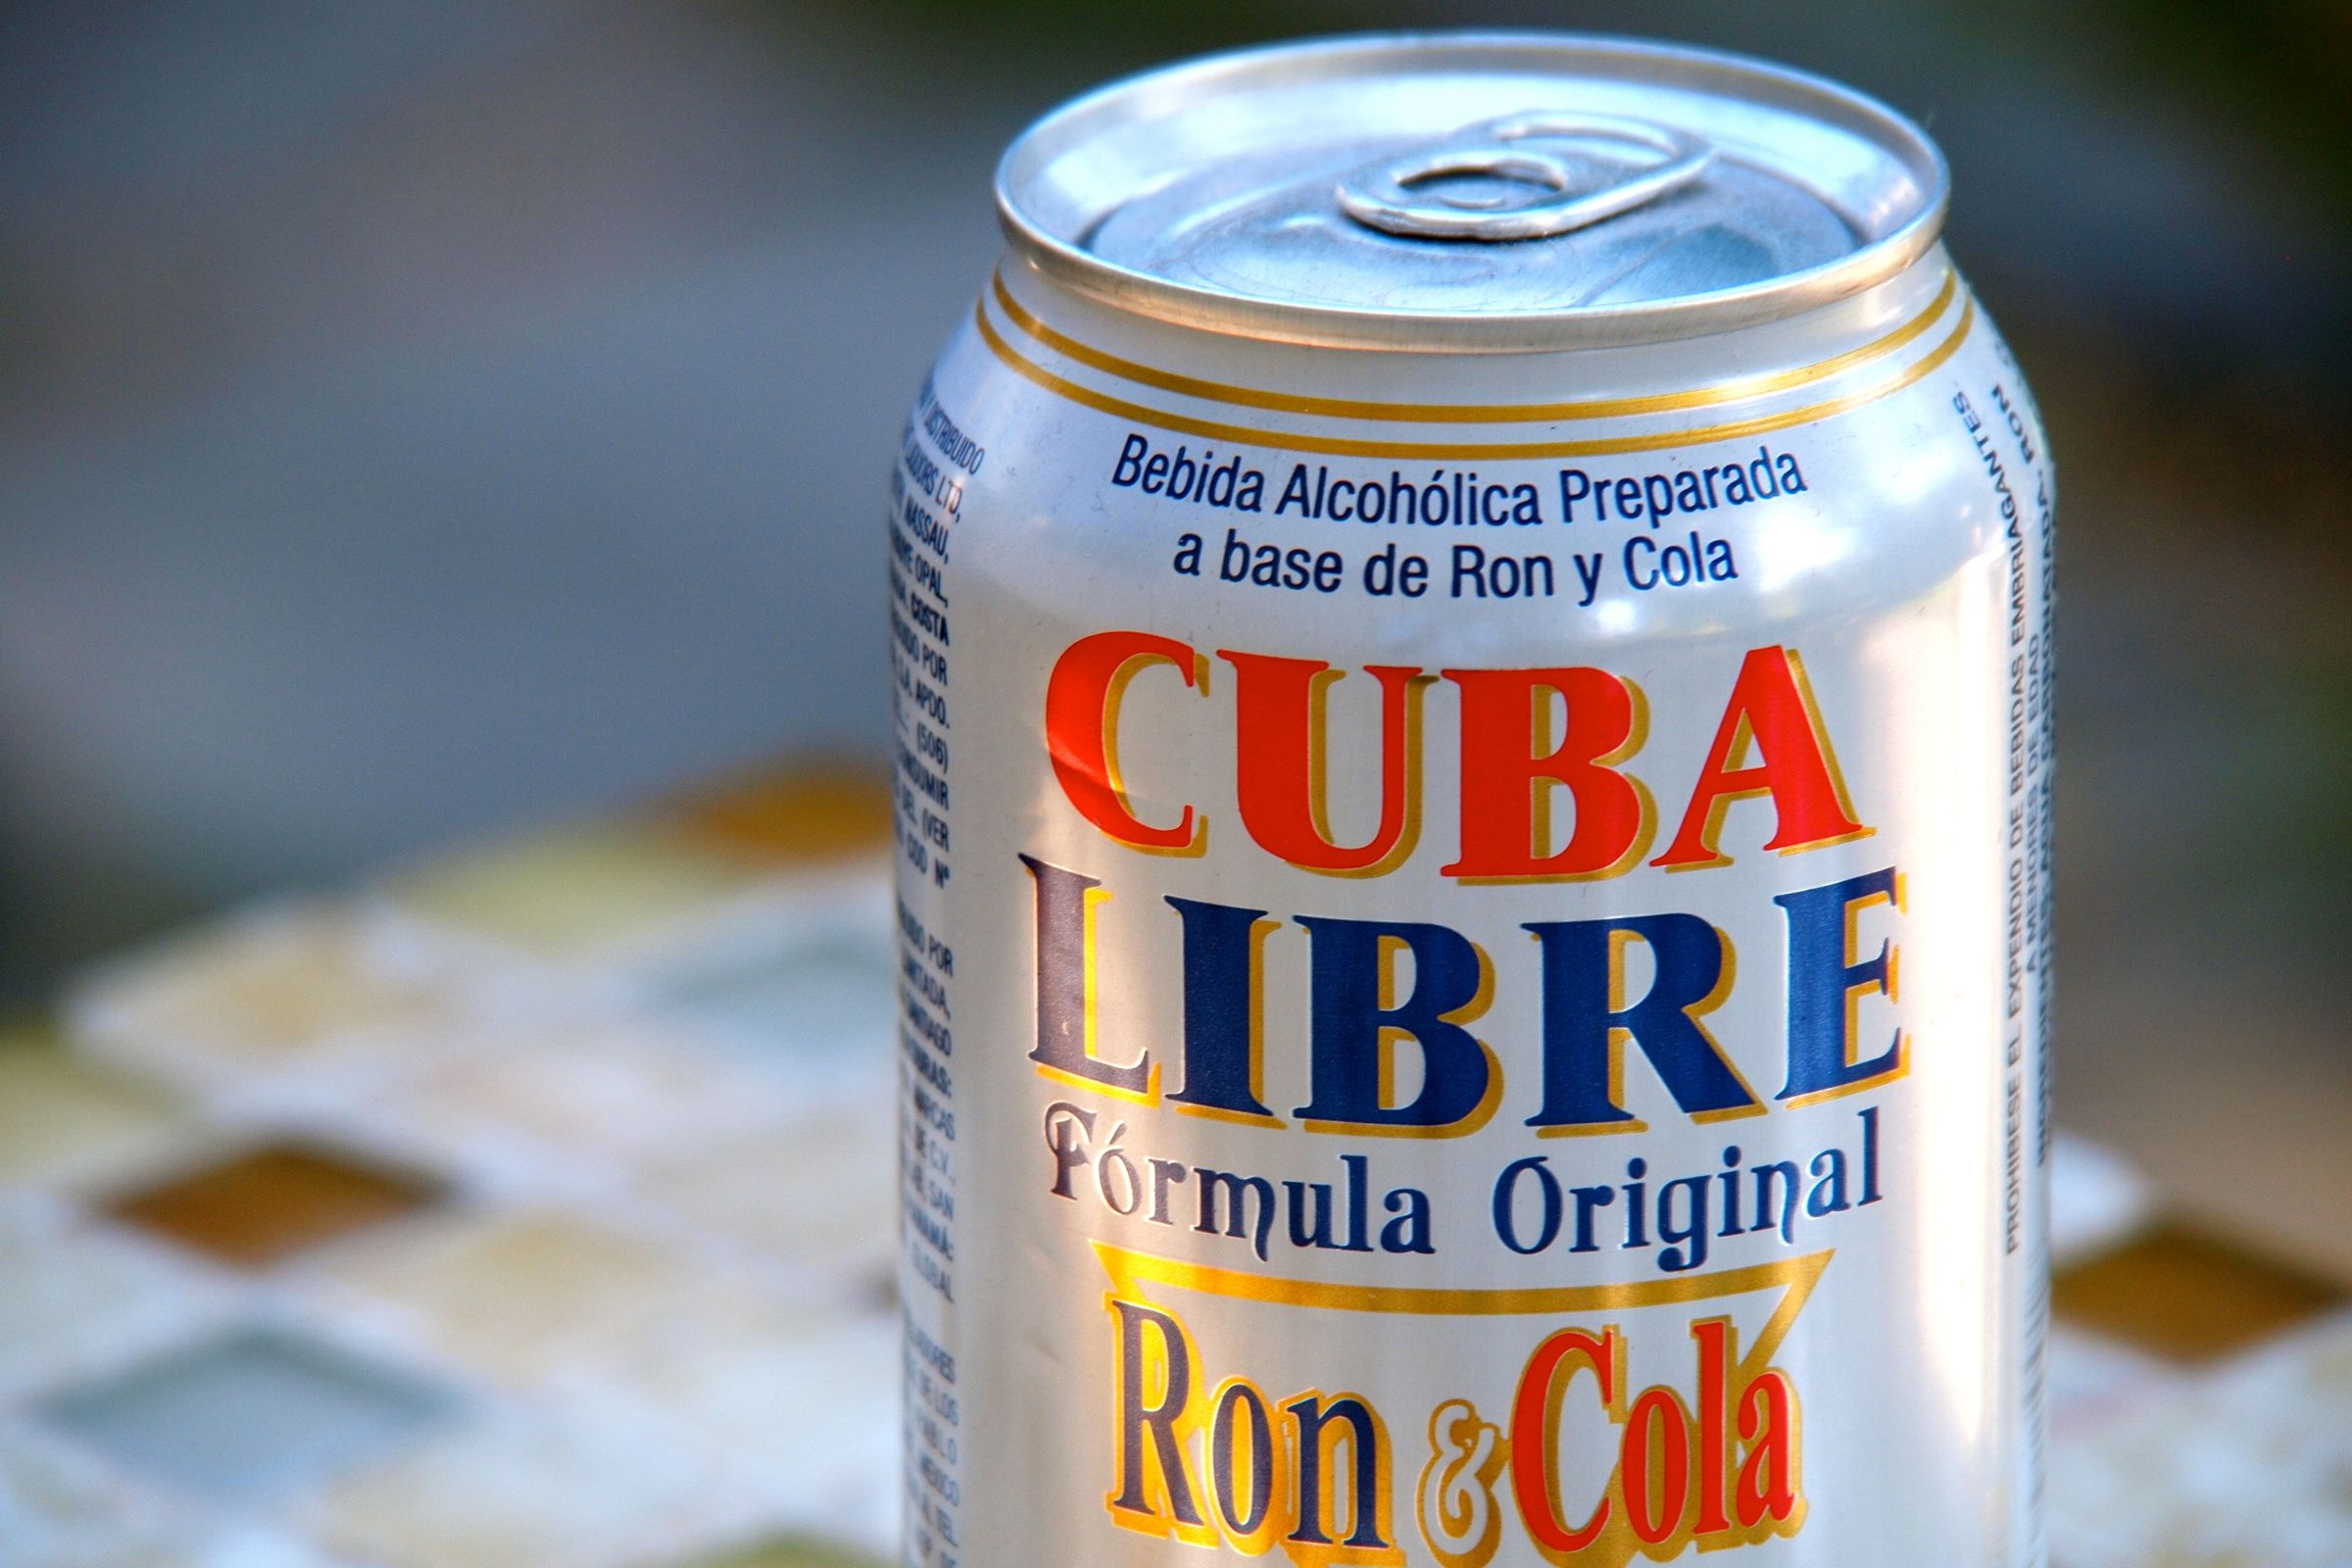 Friday Happy Hour Cuba Libre In A Can Umm Not The Best Plan Caribbean